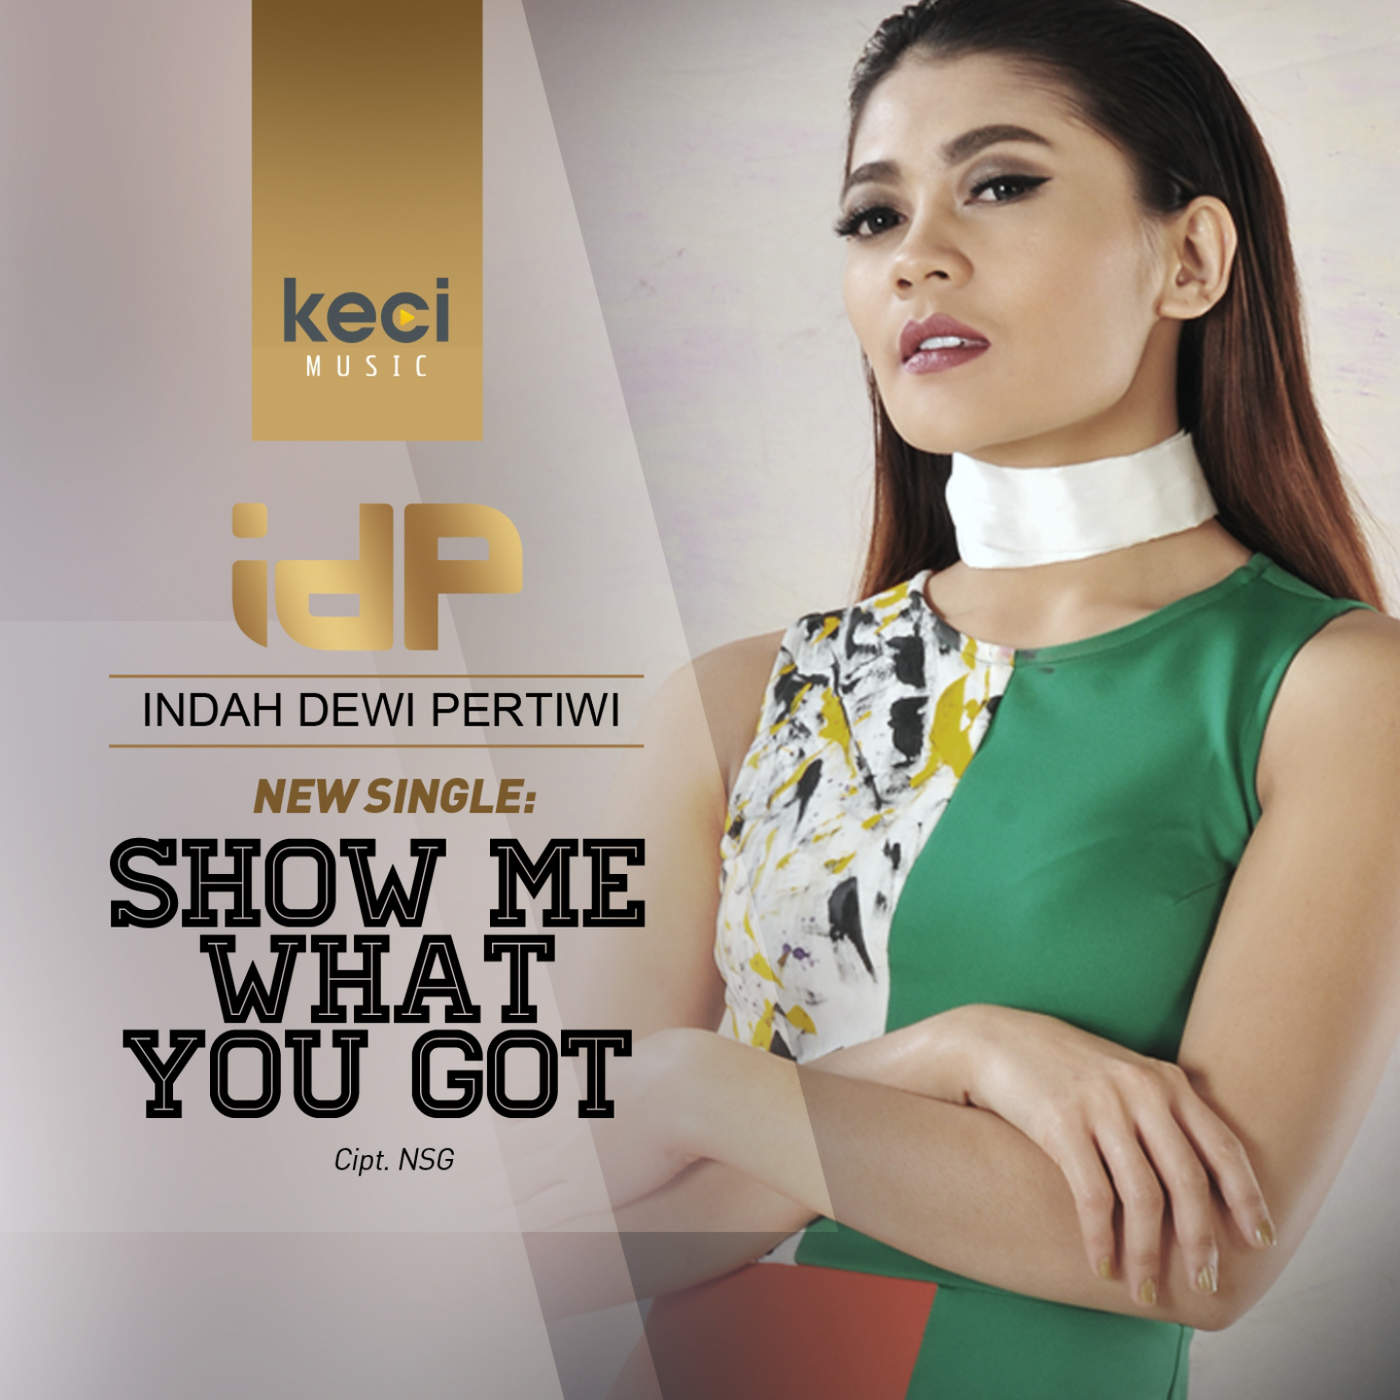 Caffein Hidupku Kan Damaikan Hatimu Indah Dewi Pertiwi Show Me What You Got Single Itunes